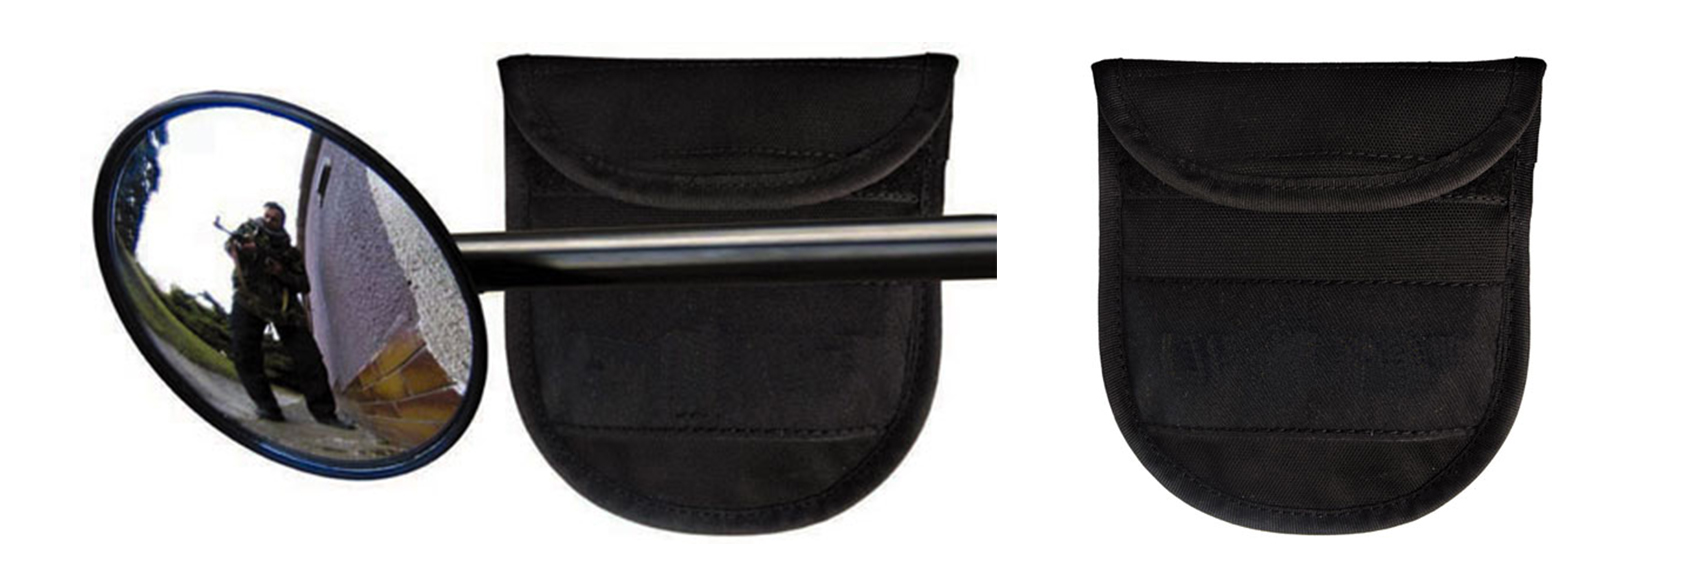 "375 • Mirror-Baton End – Small with Pouch (2.75"") Image"